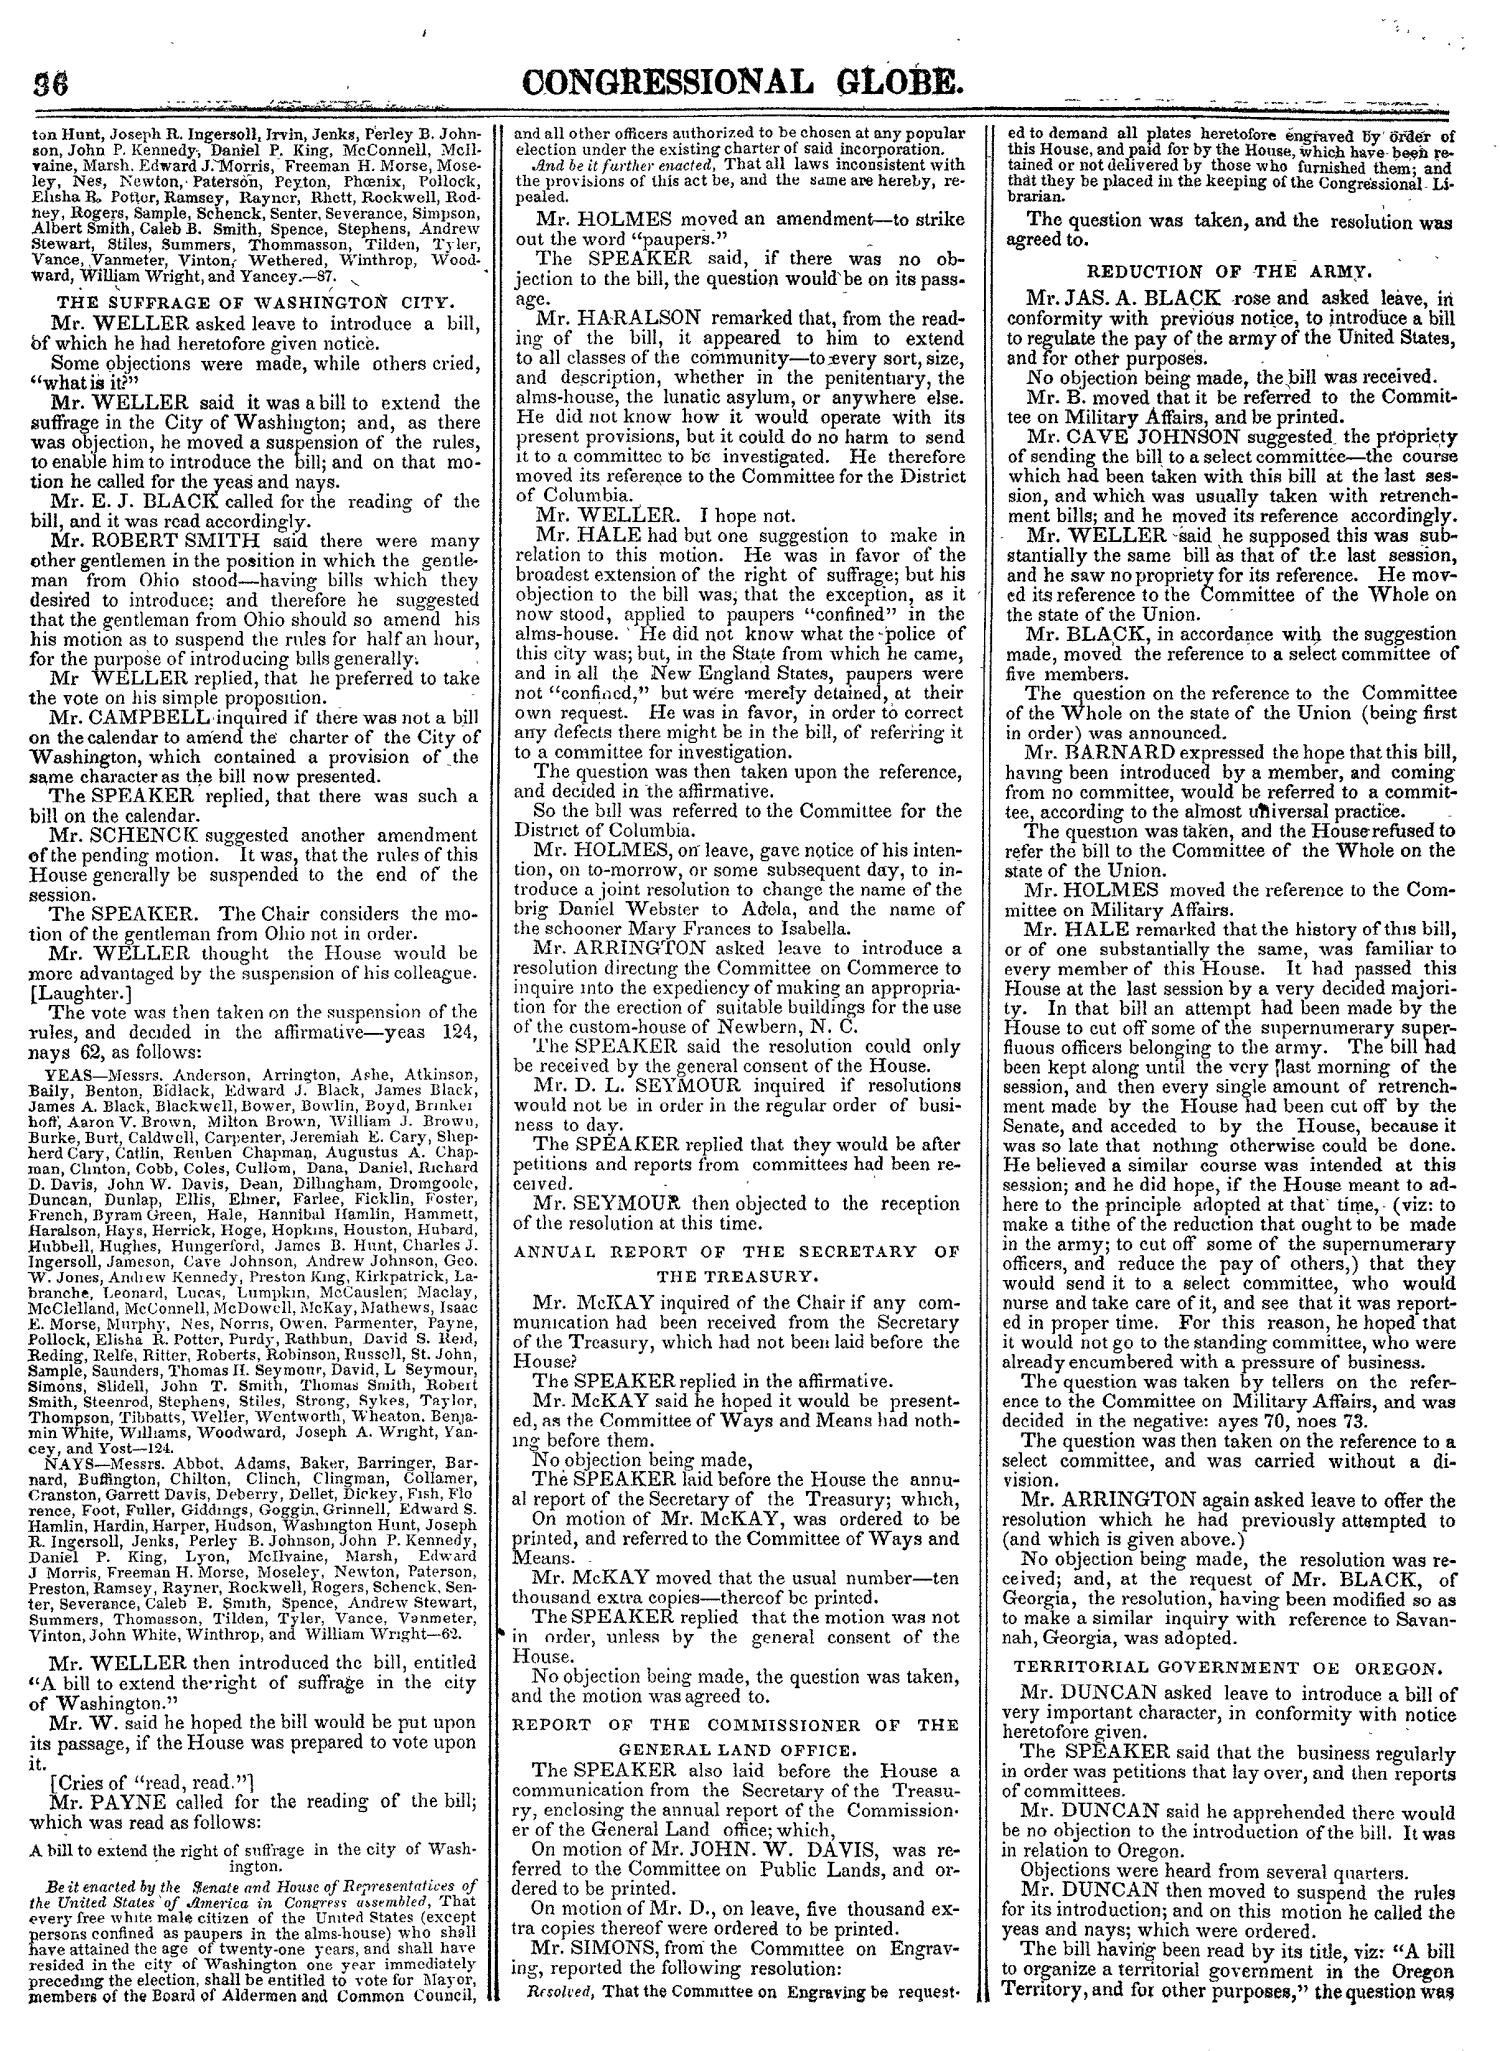 The Congressional Globe, Volume 14: Twenty-Eighth Congress, Second Session                                                                                                      36